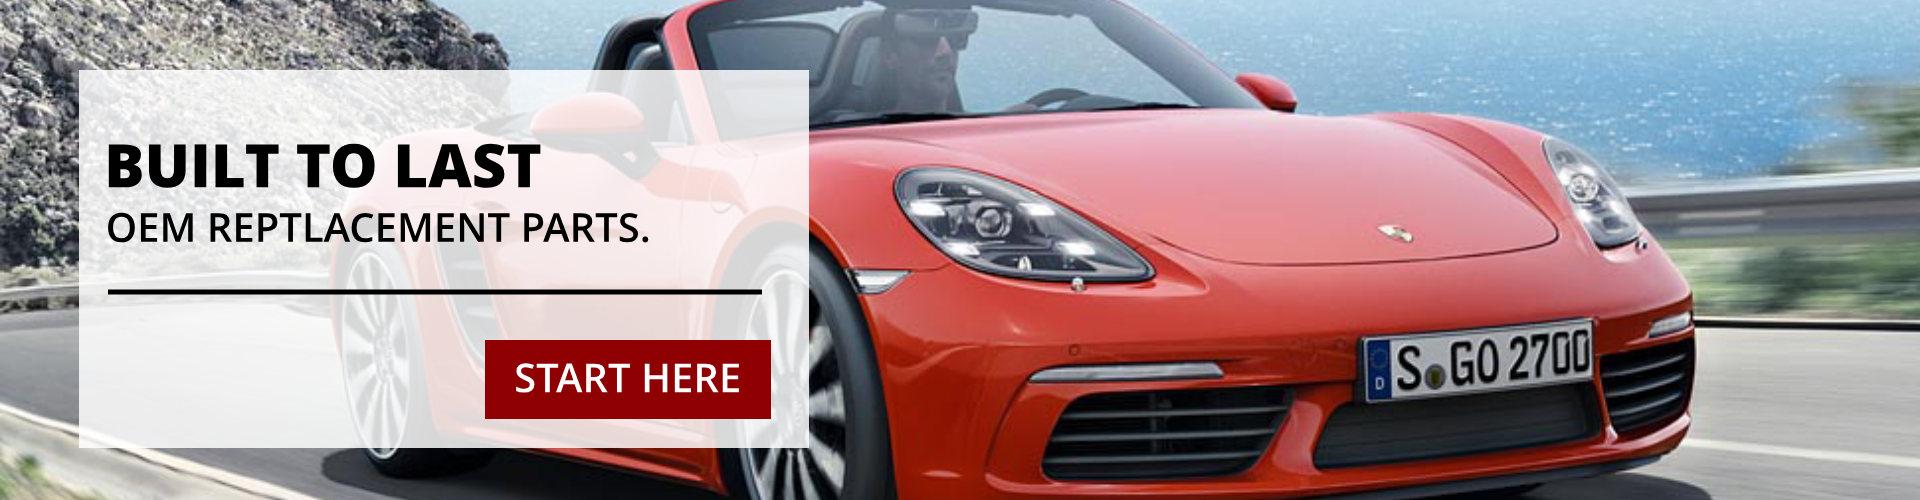 Porsche OEM Replacement Parts and Accessories